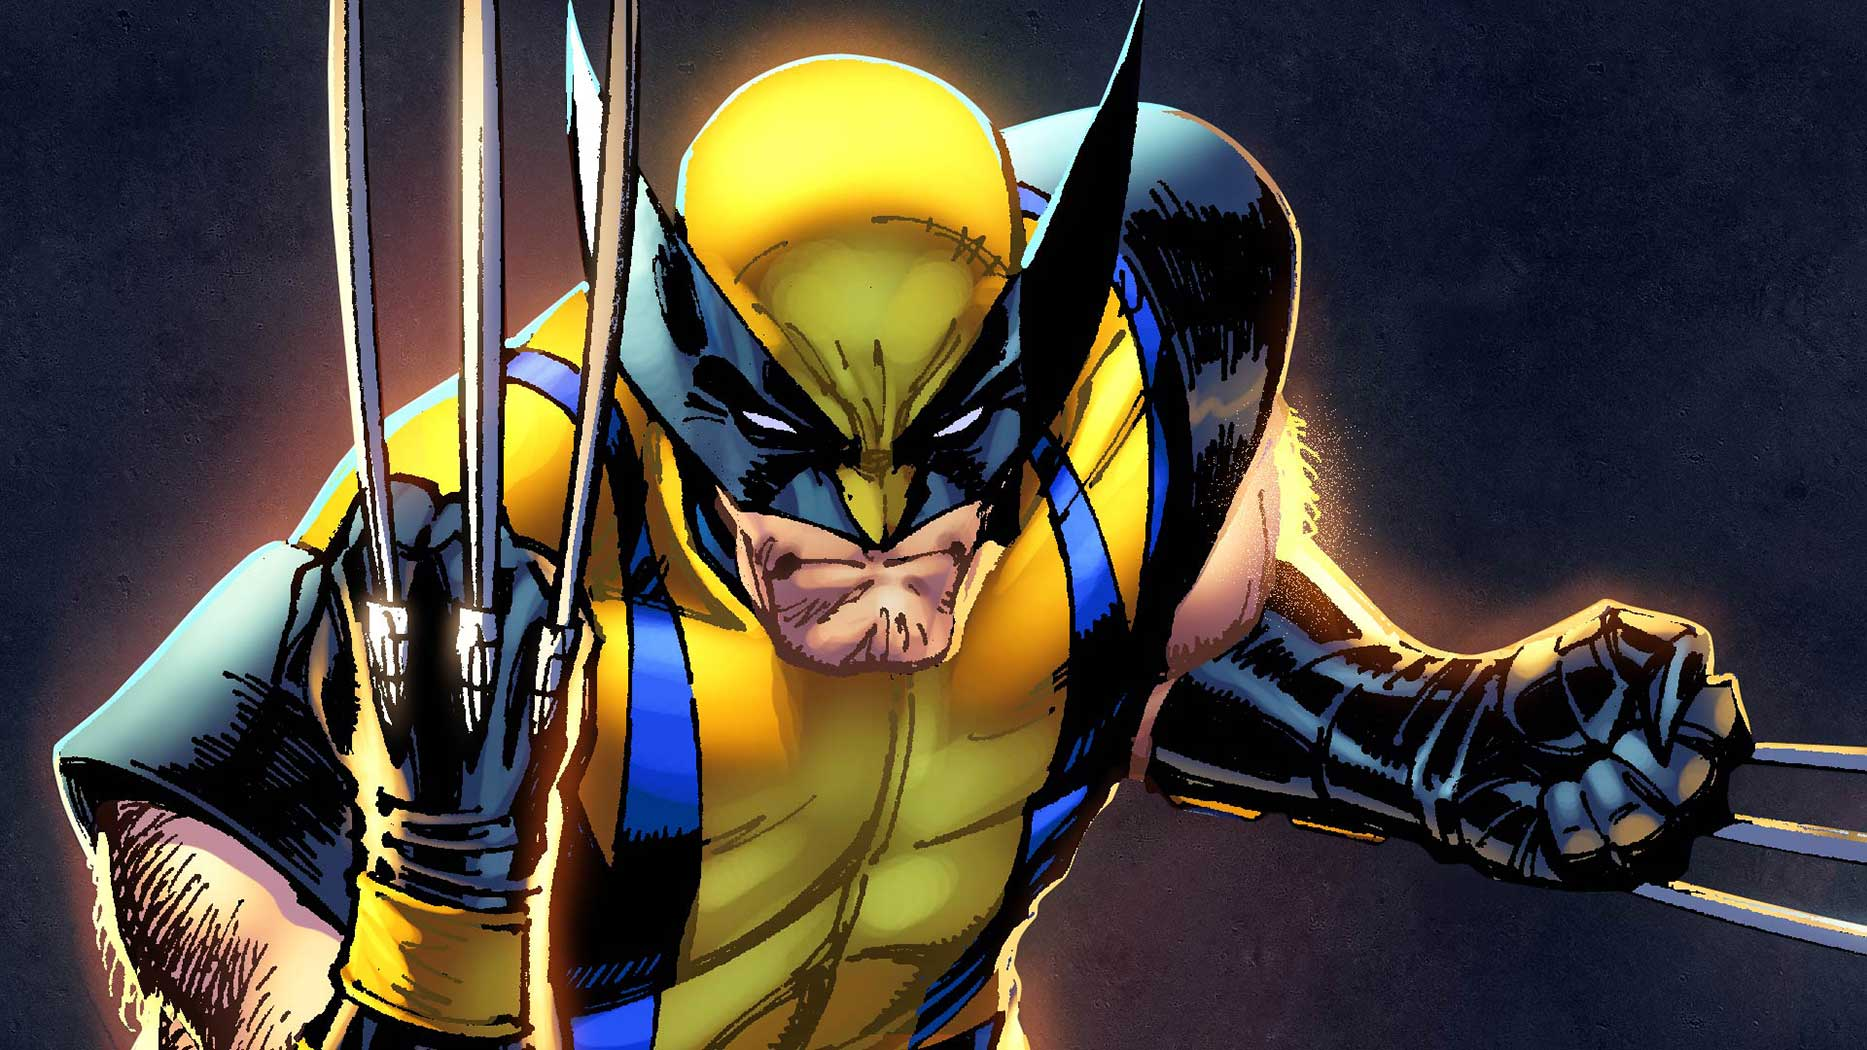 Superhero workout series build arms like wolverine